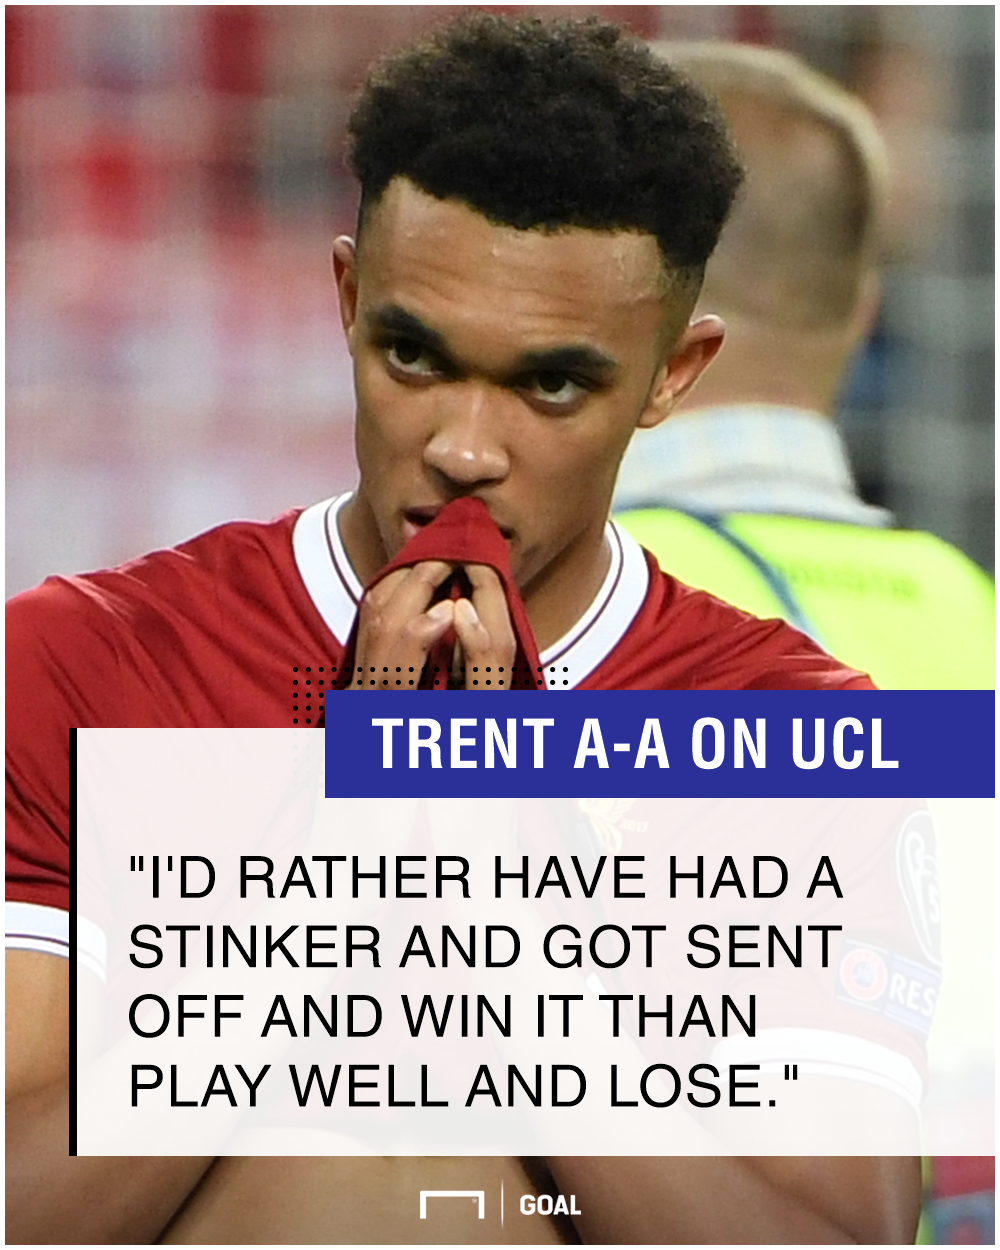 Trent AA on UCL